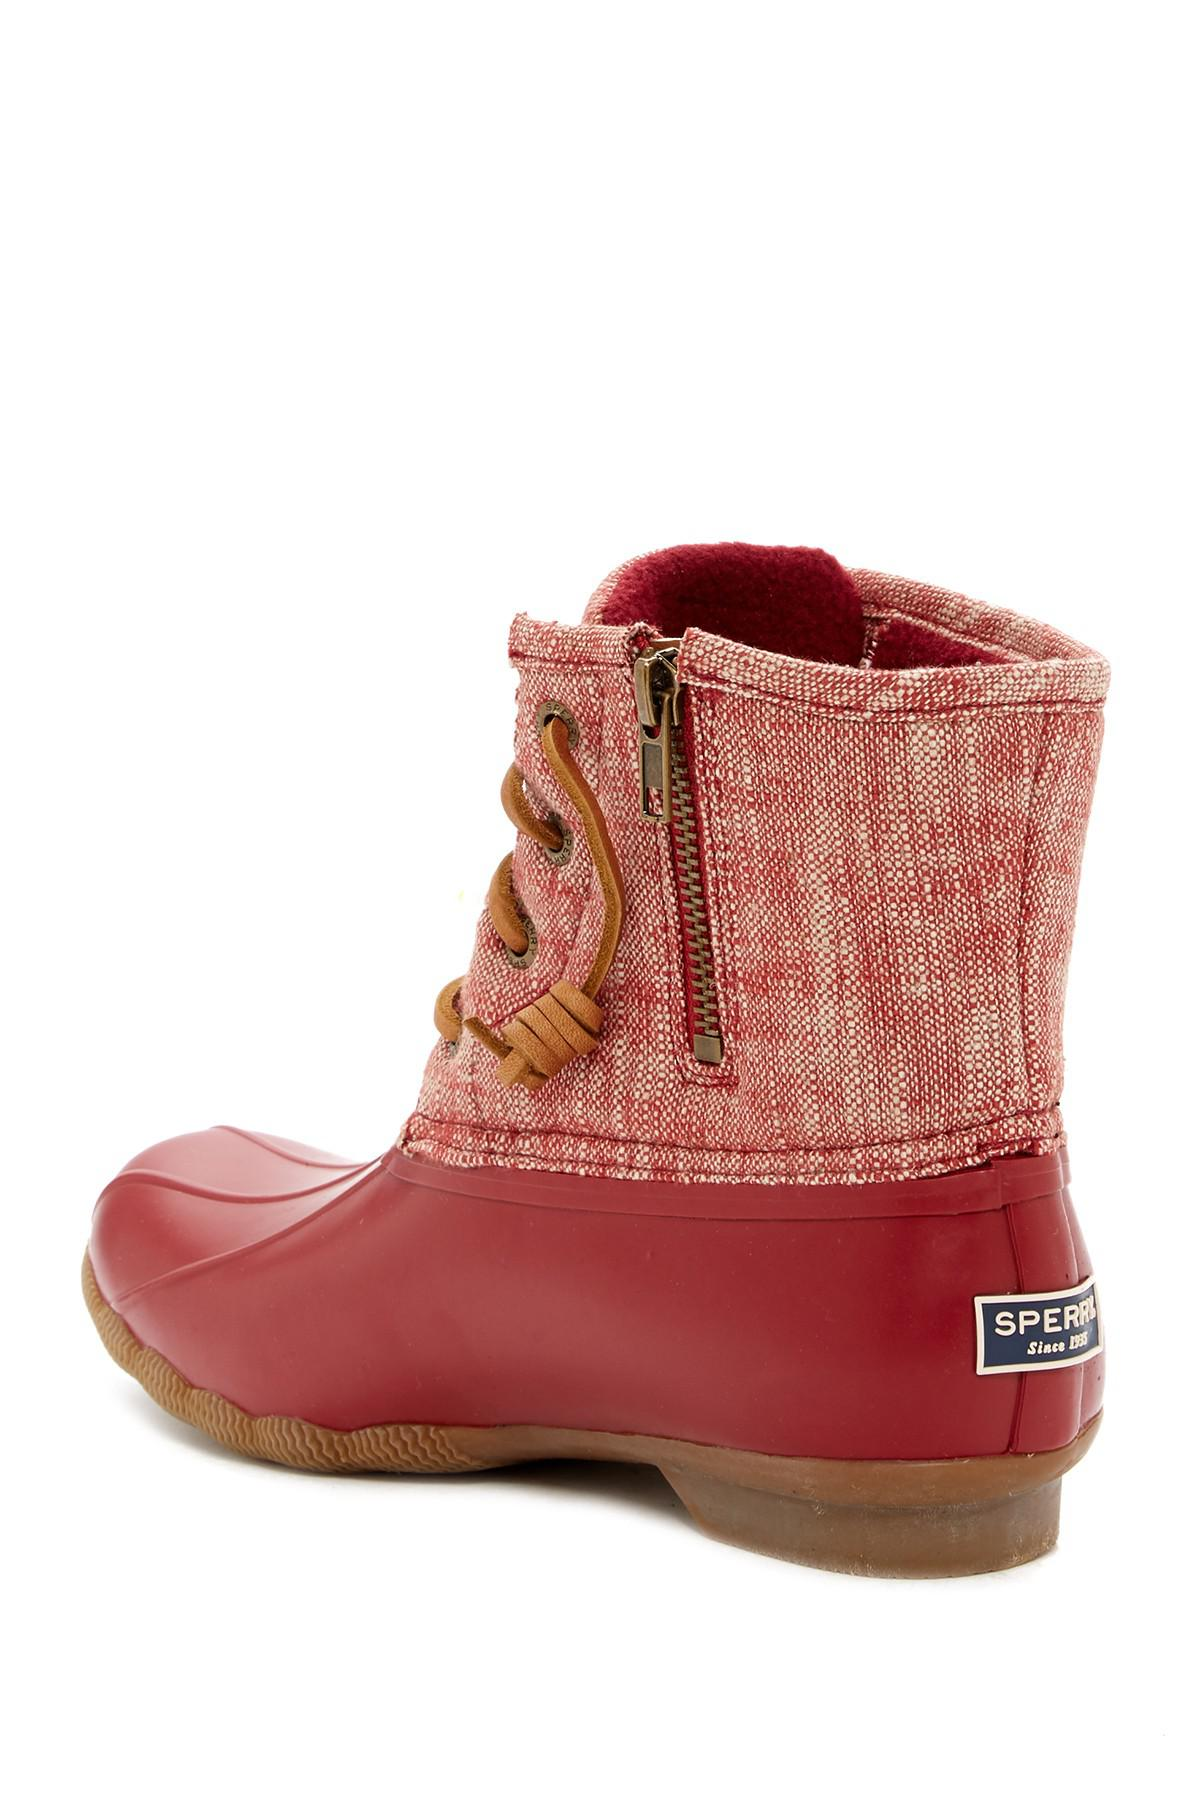 9e1ebef9679 Lyst - Sperry Top-Sider Saltwater Waterproof Canvas Duck Boot in Red